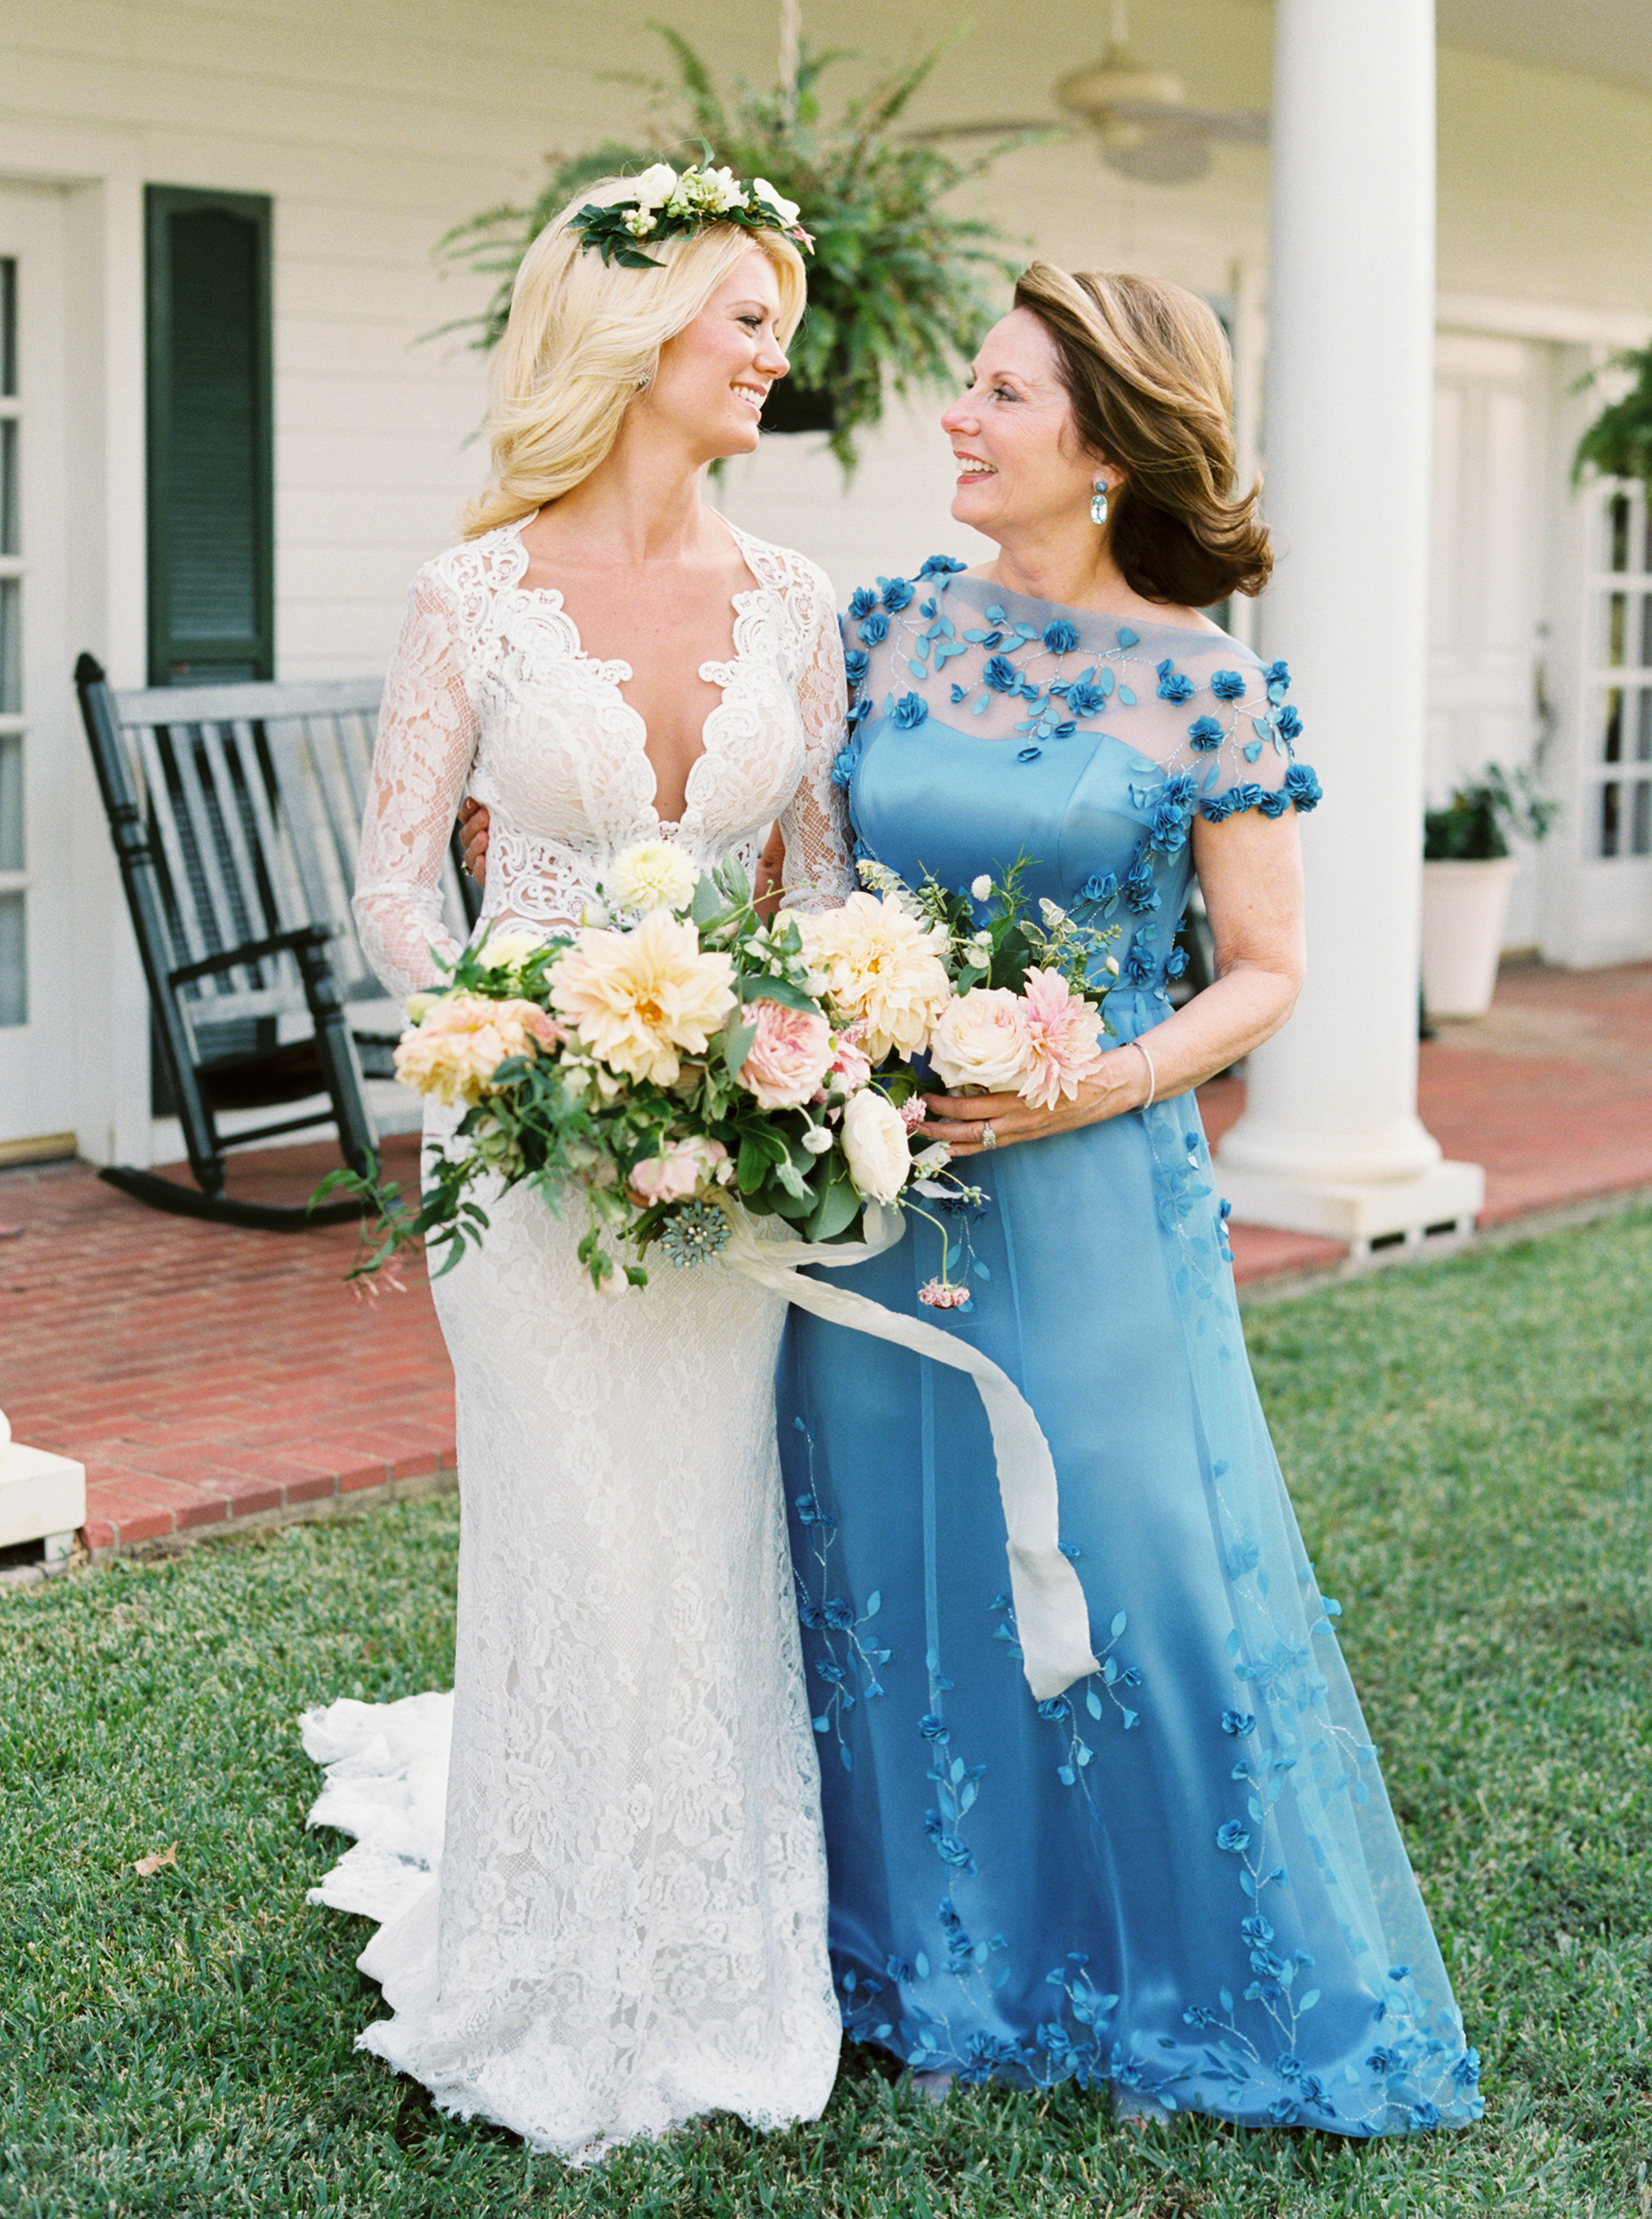 Mother-of-the-Bride and-Groom Dresses We Love for a Spring Wedding